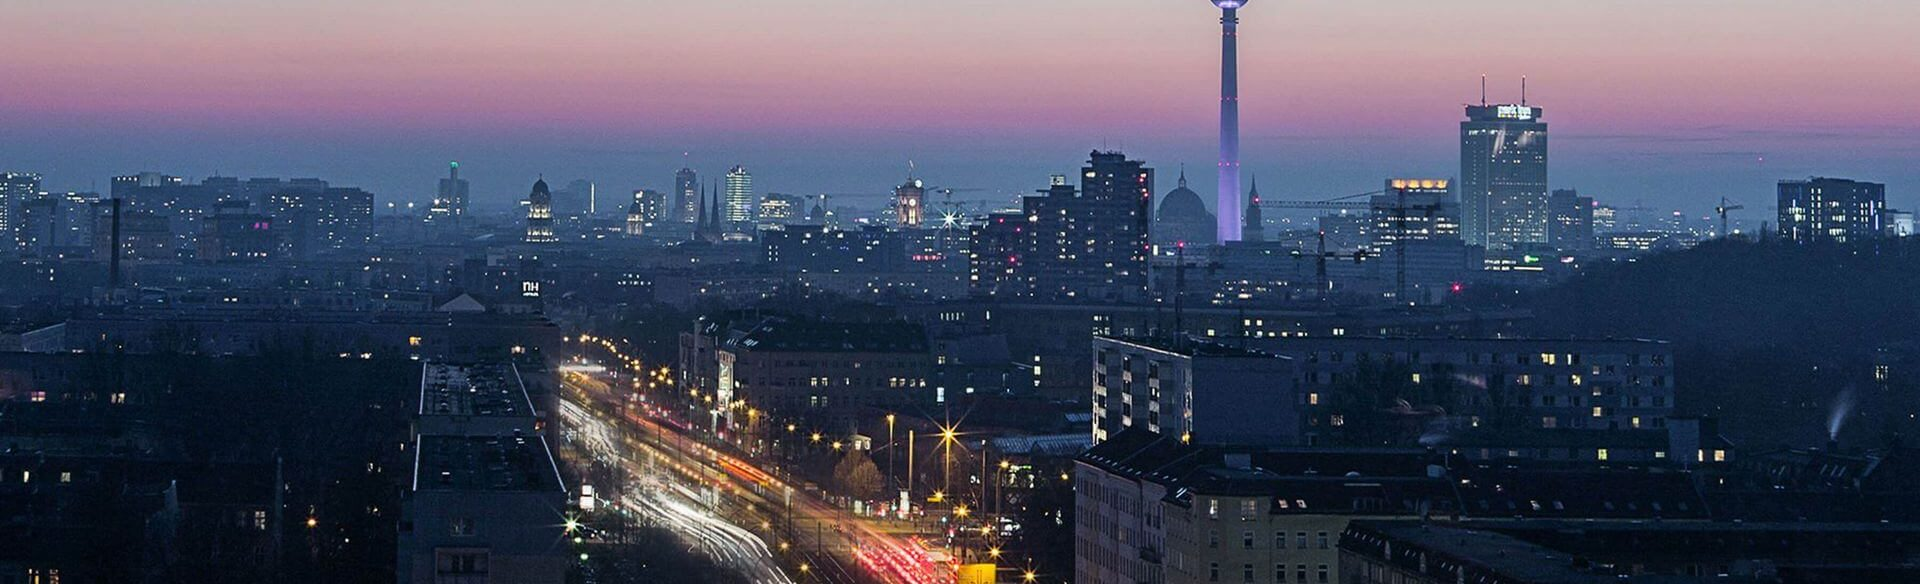 csm_skykitchen-restaurant-berlin-view-evening-gallery_41b5785a81